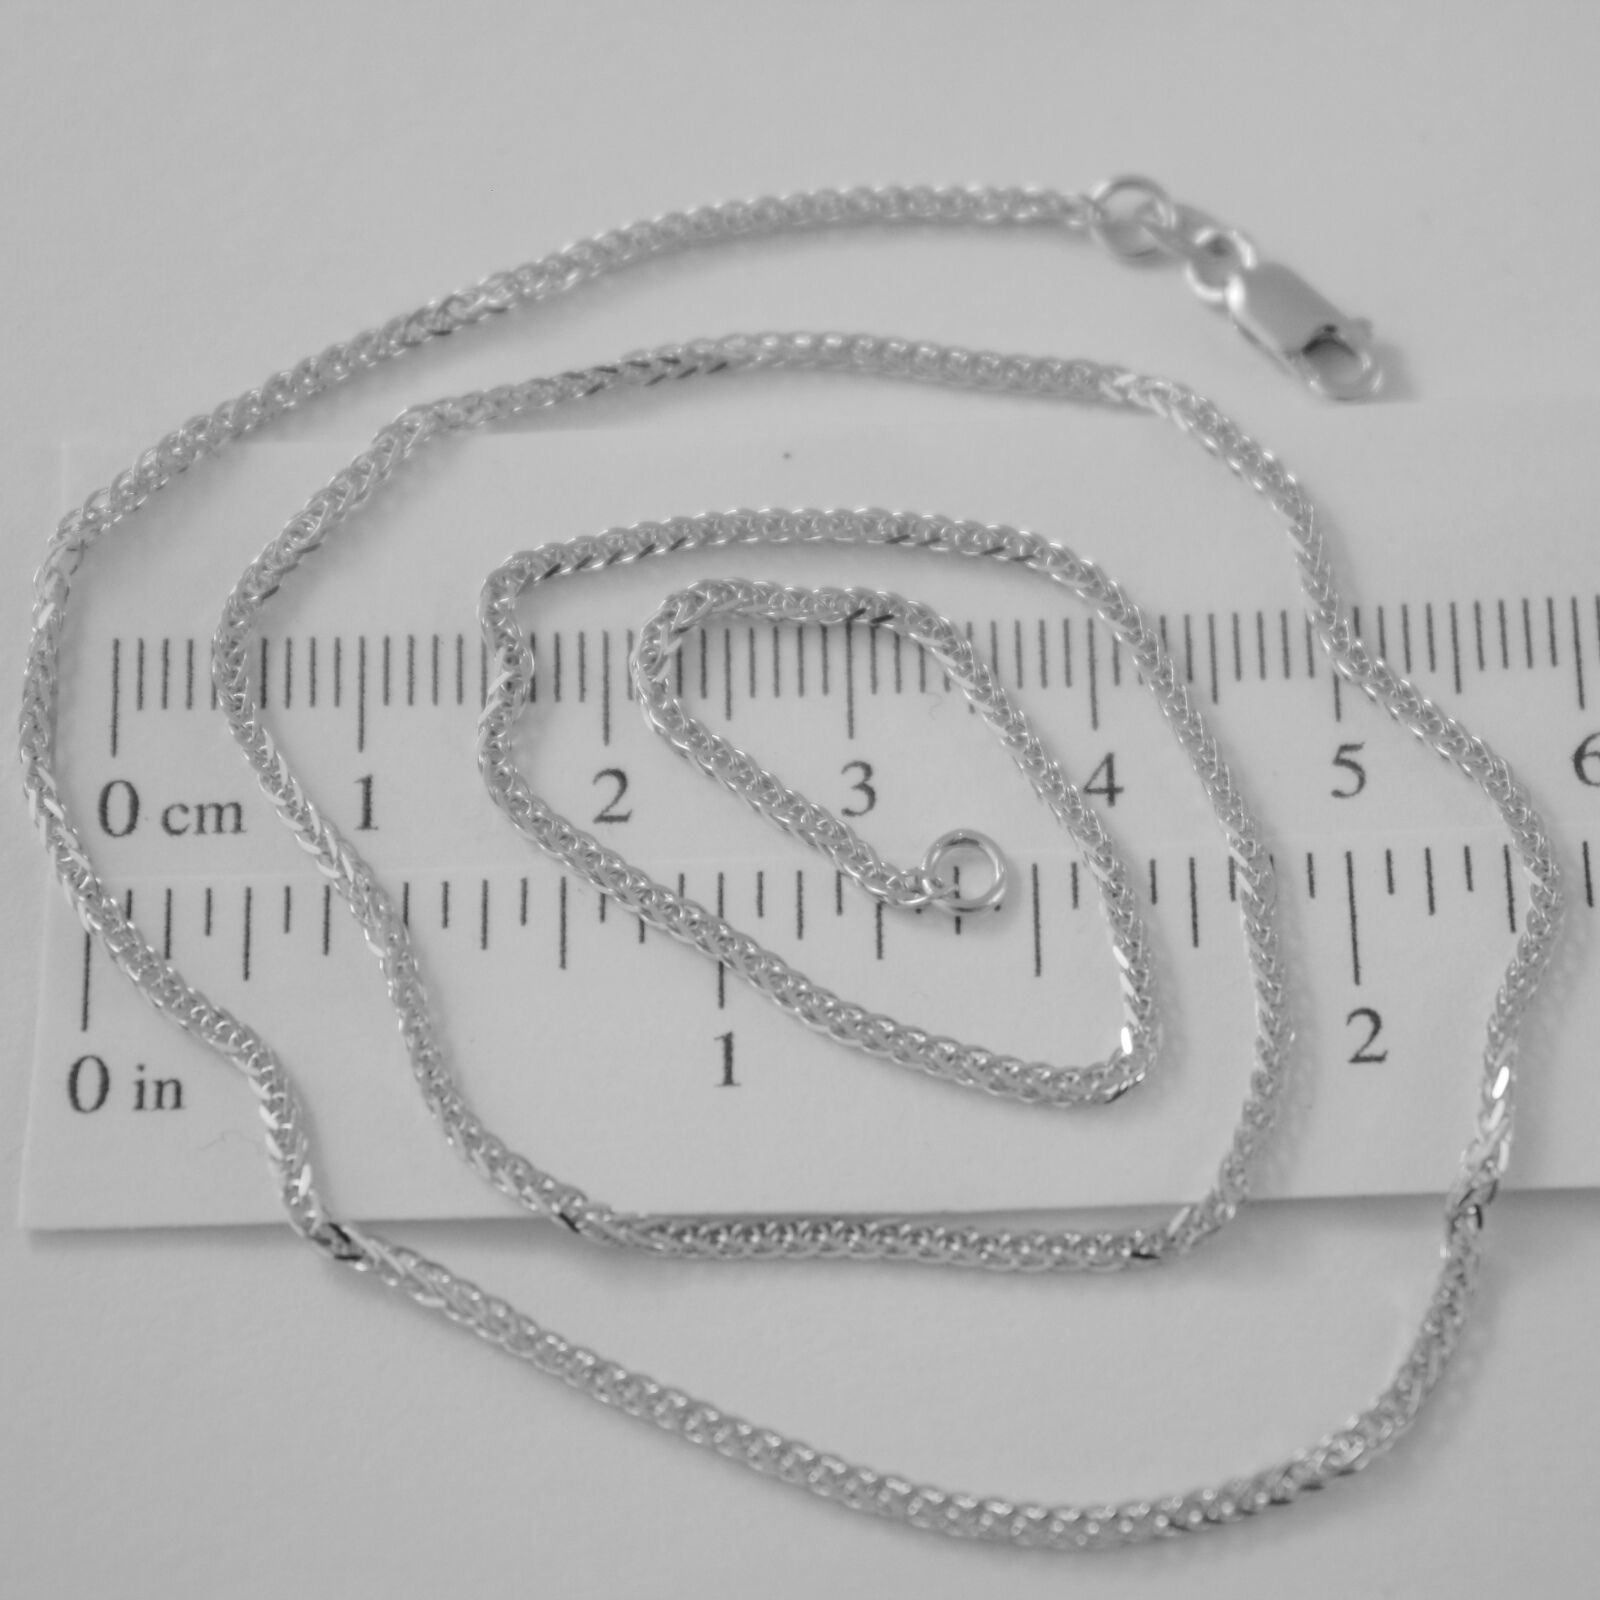 SOLID 18K WHITE GOLD CHAIN NECKLACE 2MM EAR SQUARE LINK 23.62 IN, MADE IN ITALY